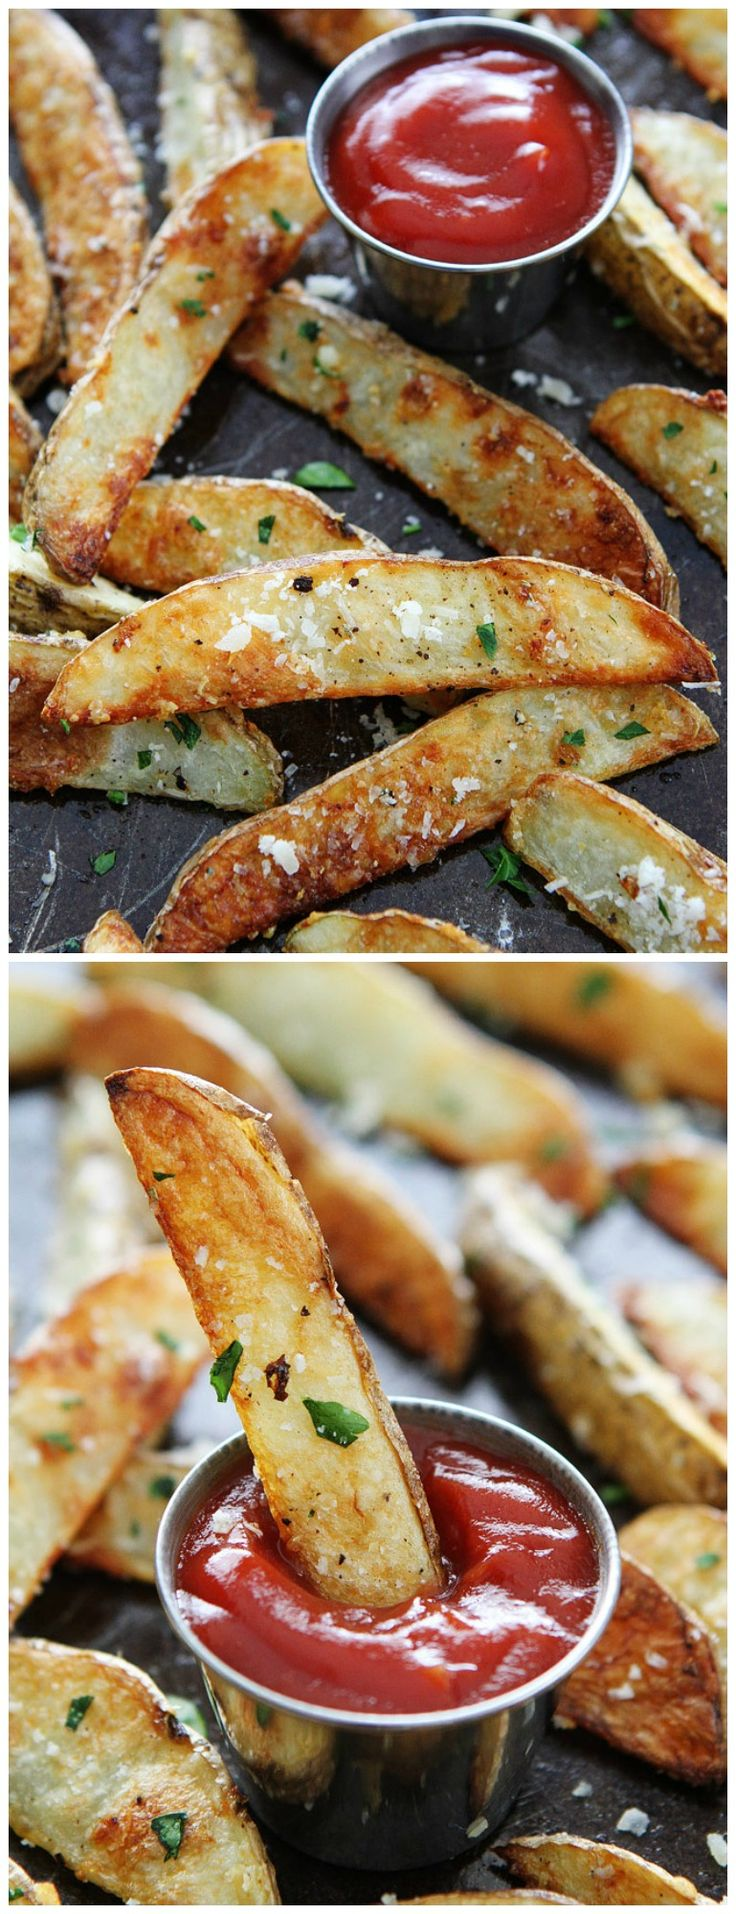 Baked Garlic Parmesan Potato Wedges Recipe on twopeasandtheirpod.com. These are the BEST French fries and they are So easy to make at home!